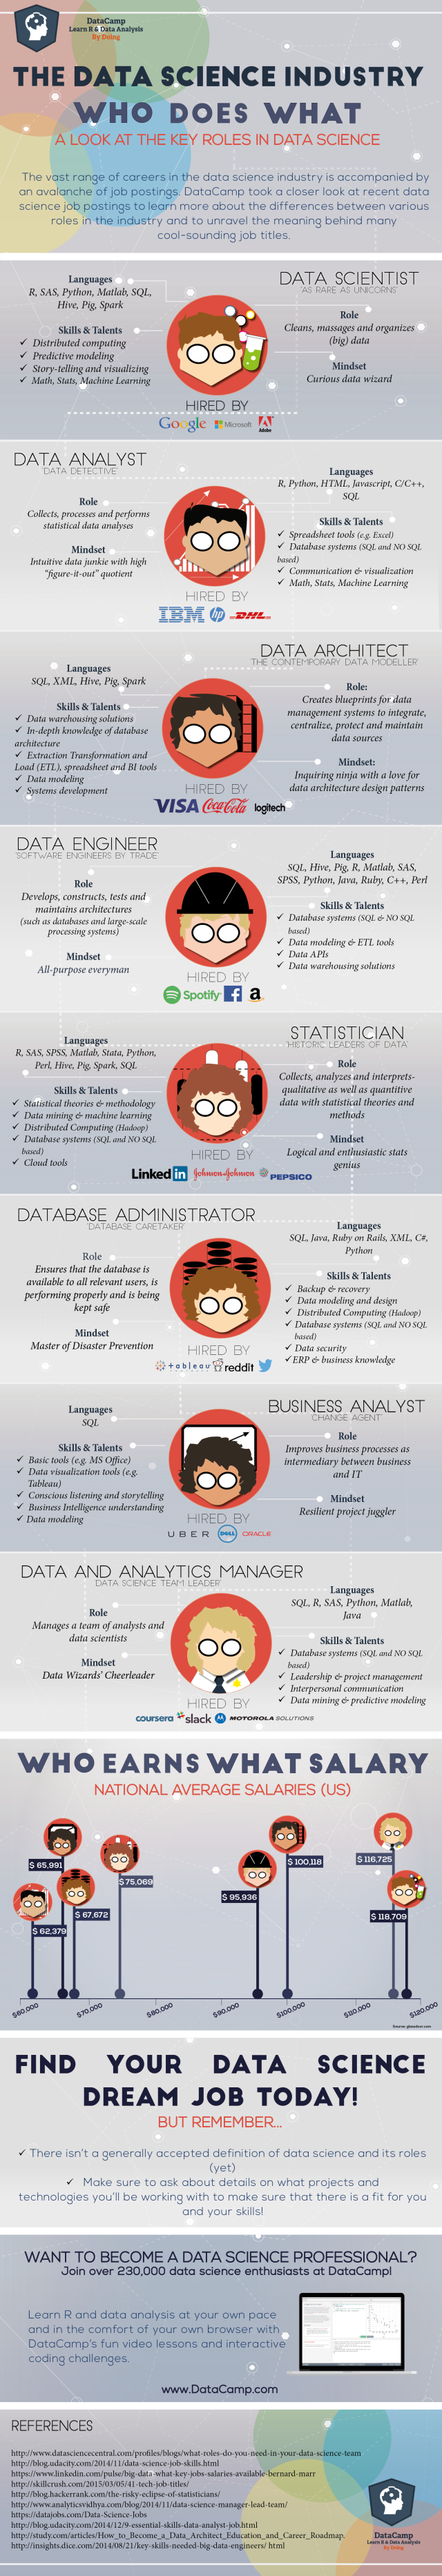 DataScientists_roles